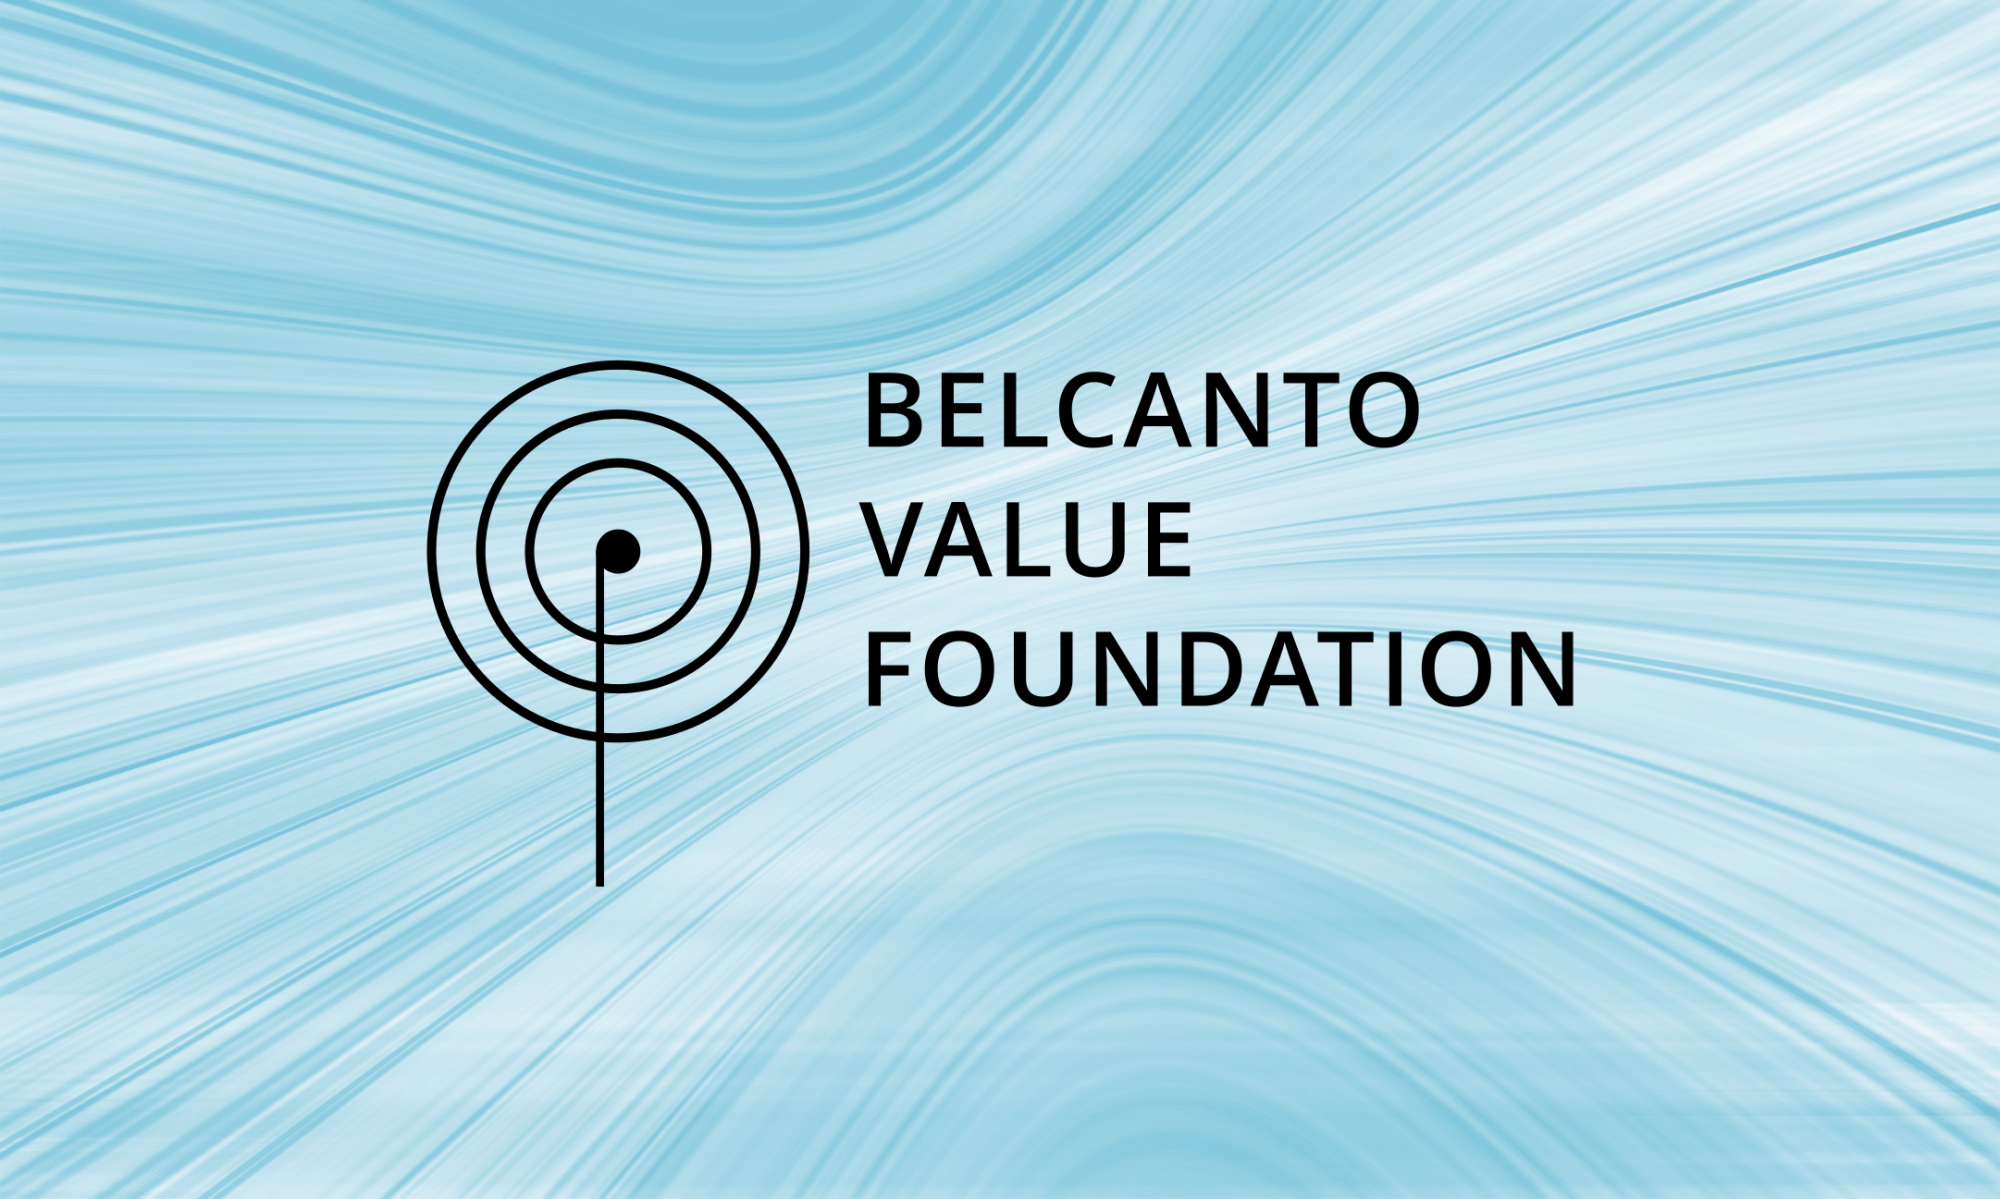 Belcanto Value Foundation